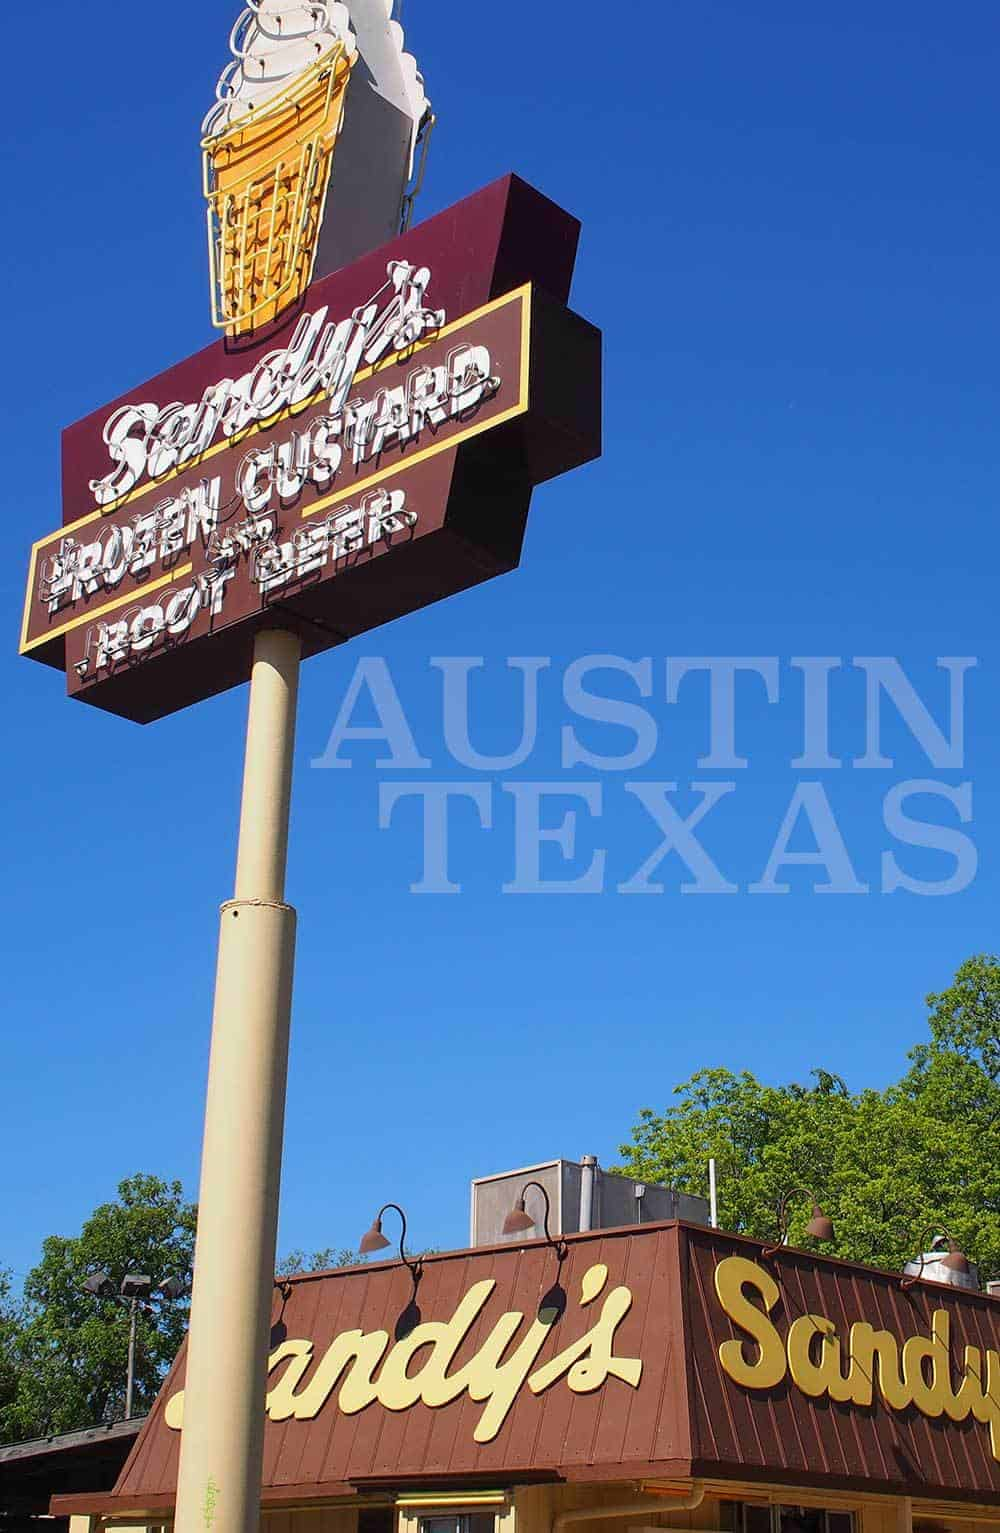 The Truth about Sandy's Burgers Austin Texas by Calculated Traveller